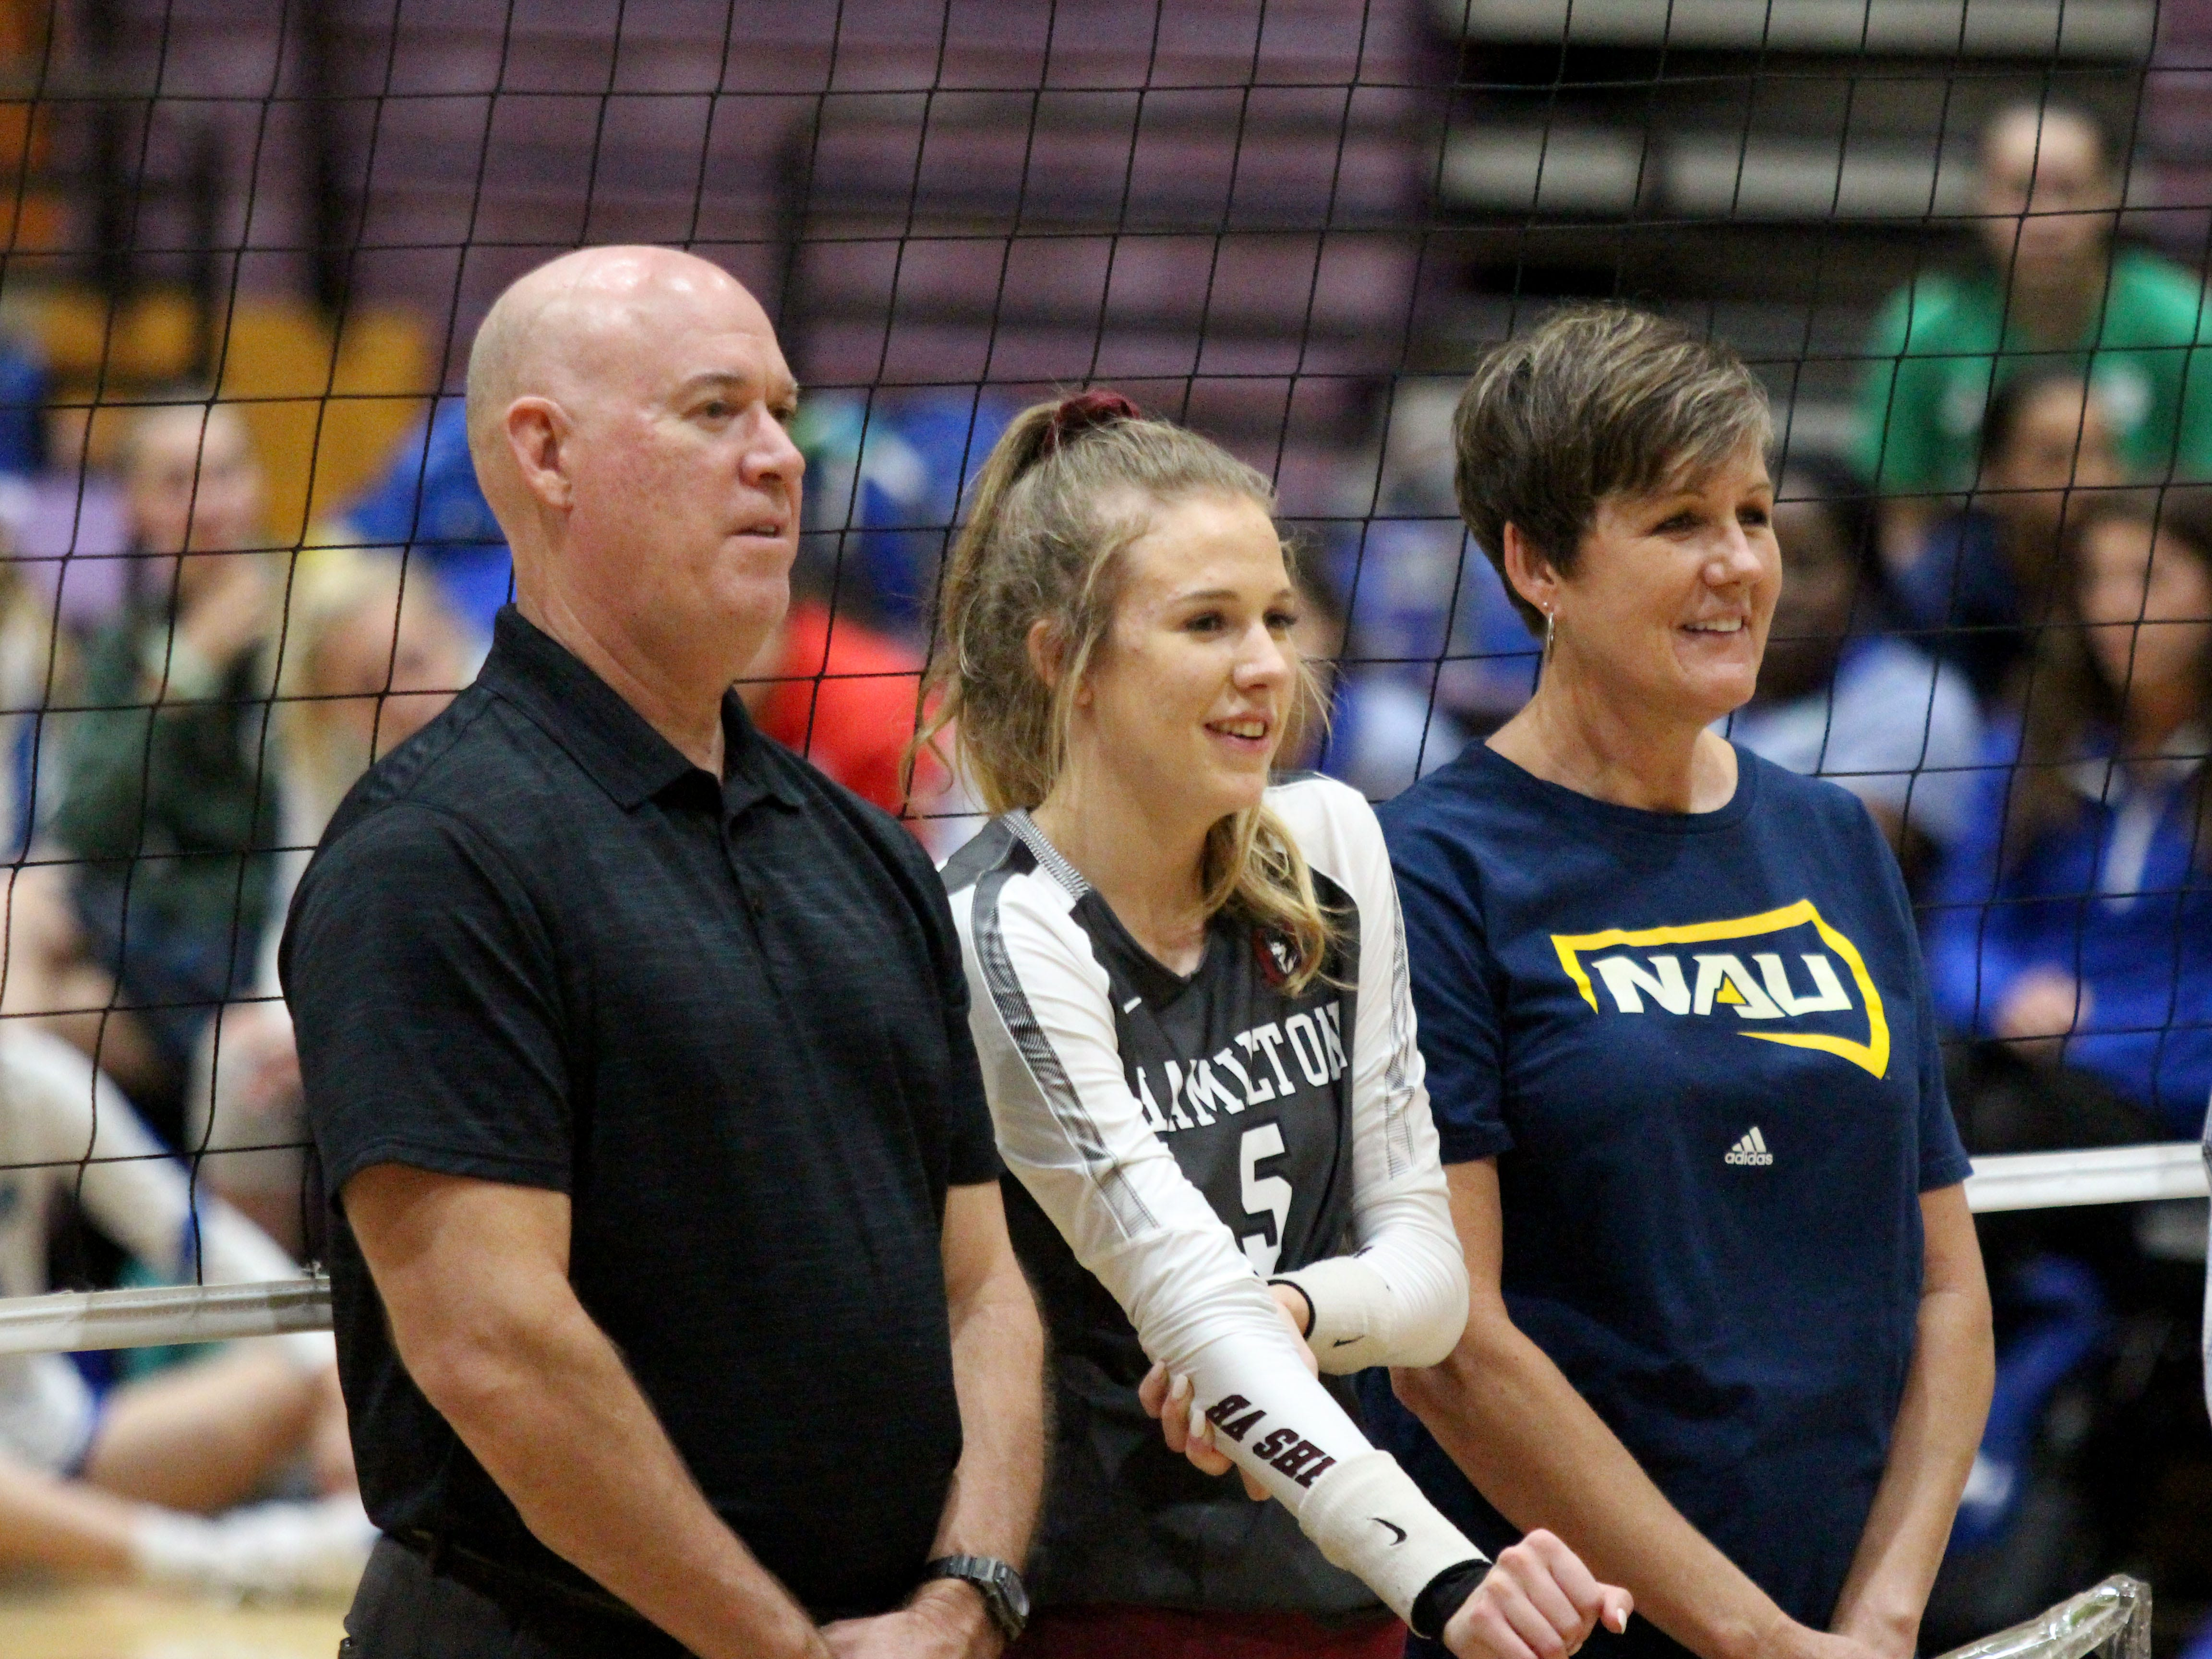 Hamilton's Taylor Jacobsen stands by her her parents on senior night before the team's game against Xavier College Prep on Tuesday night at Hamilton High School on Oct. 23, 2018.